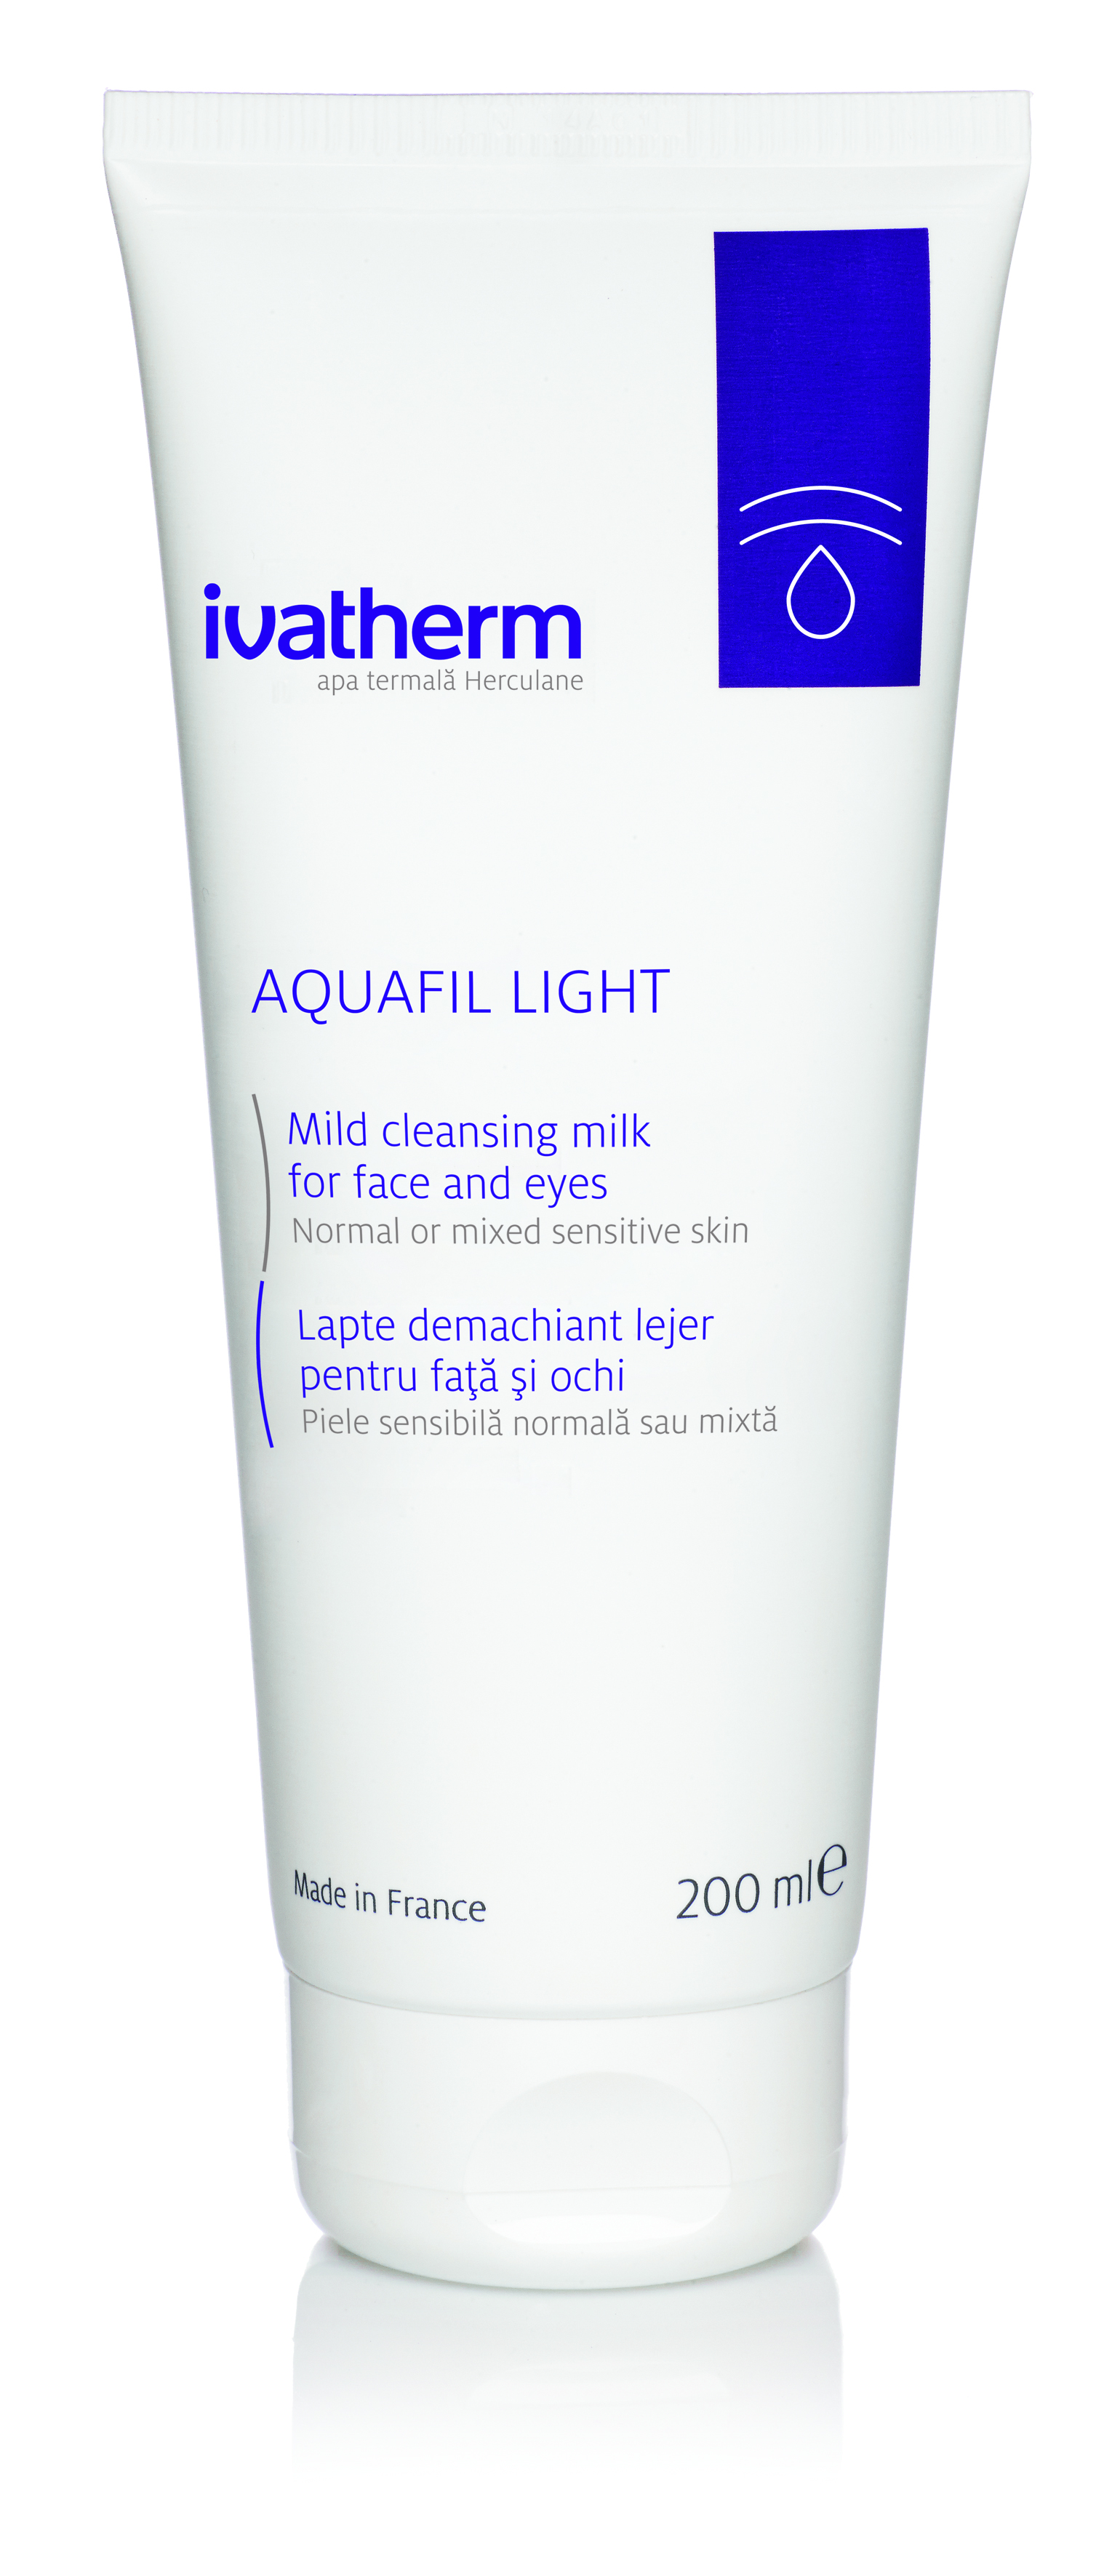 AQUAFIL LIGHT Mild cleansing milk for face and eyes 200 ML